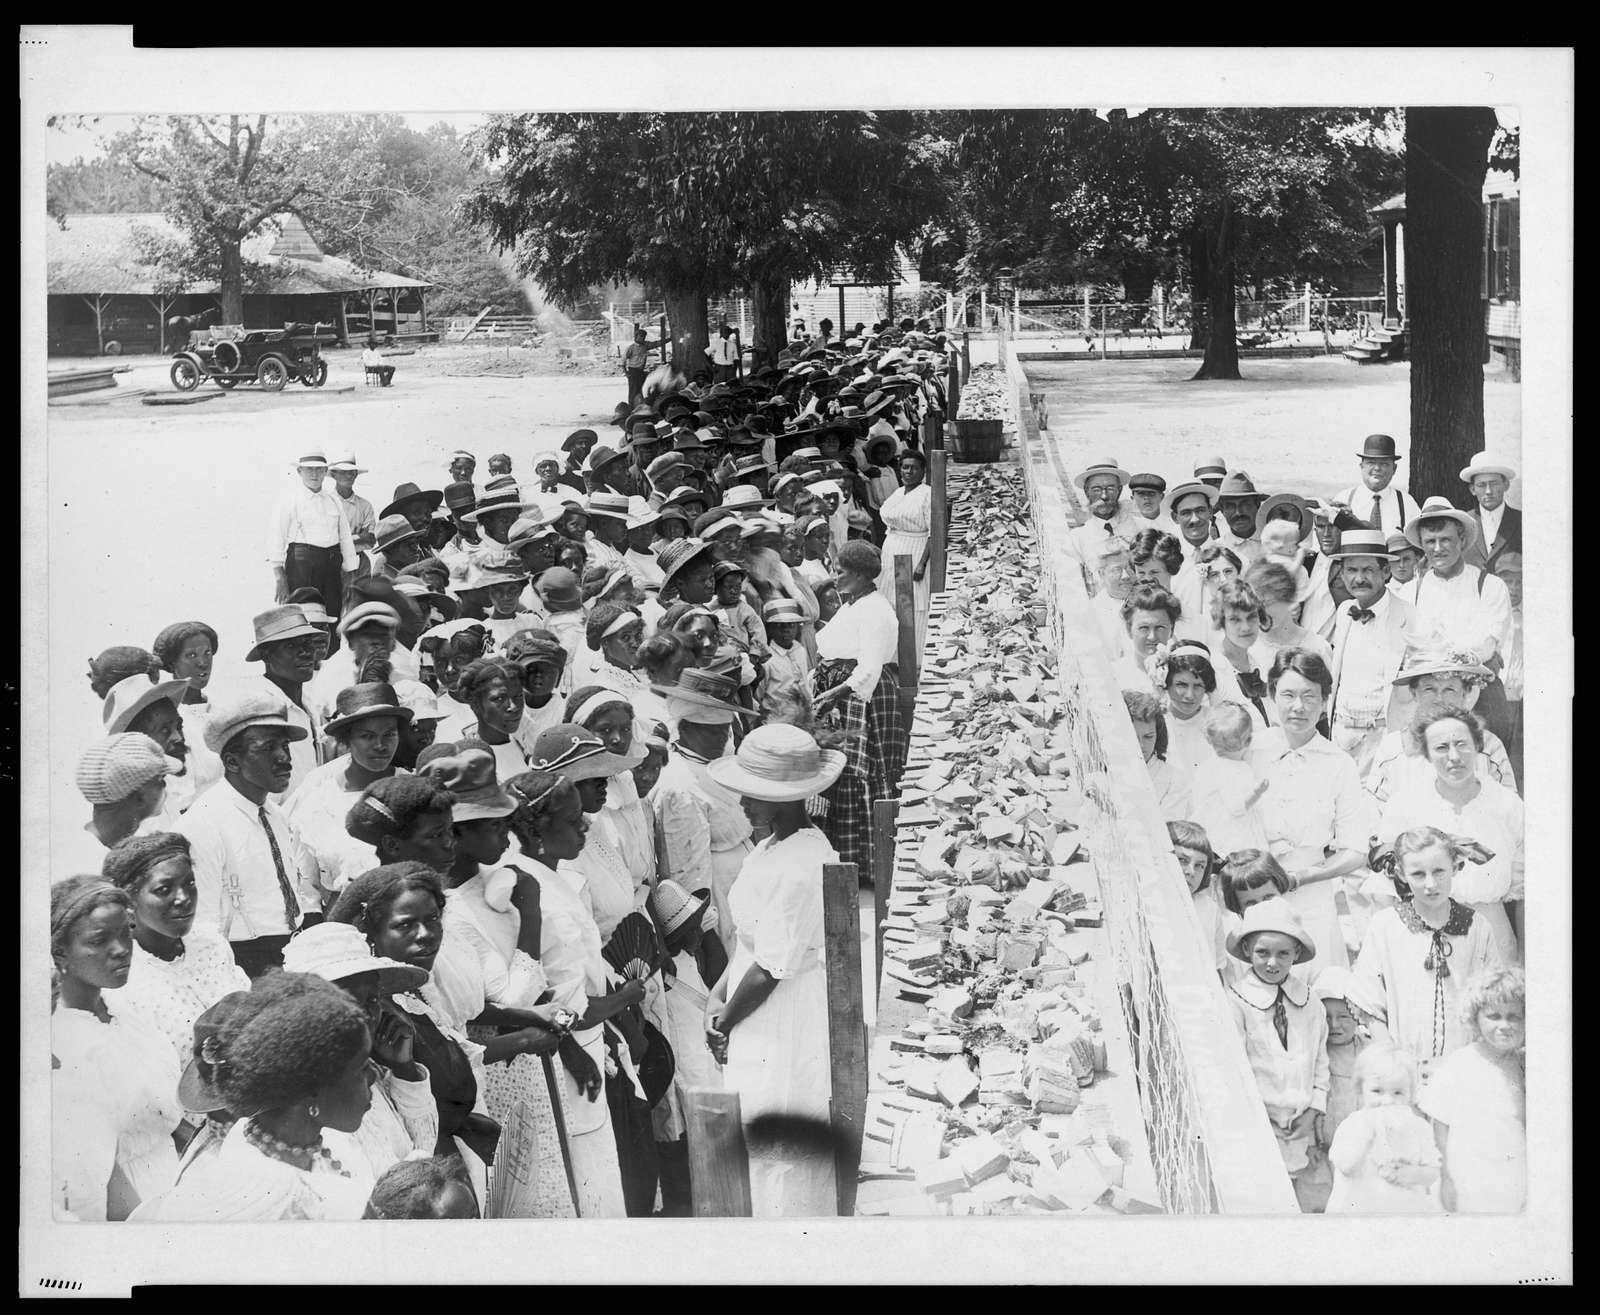 F.M. Gay's annual barbecue given on his plantation every year